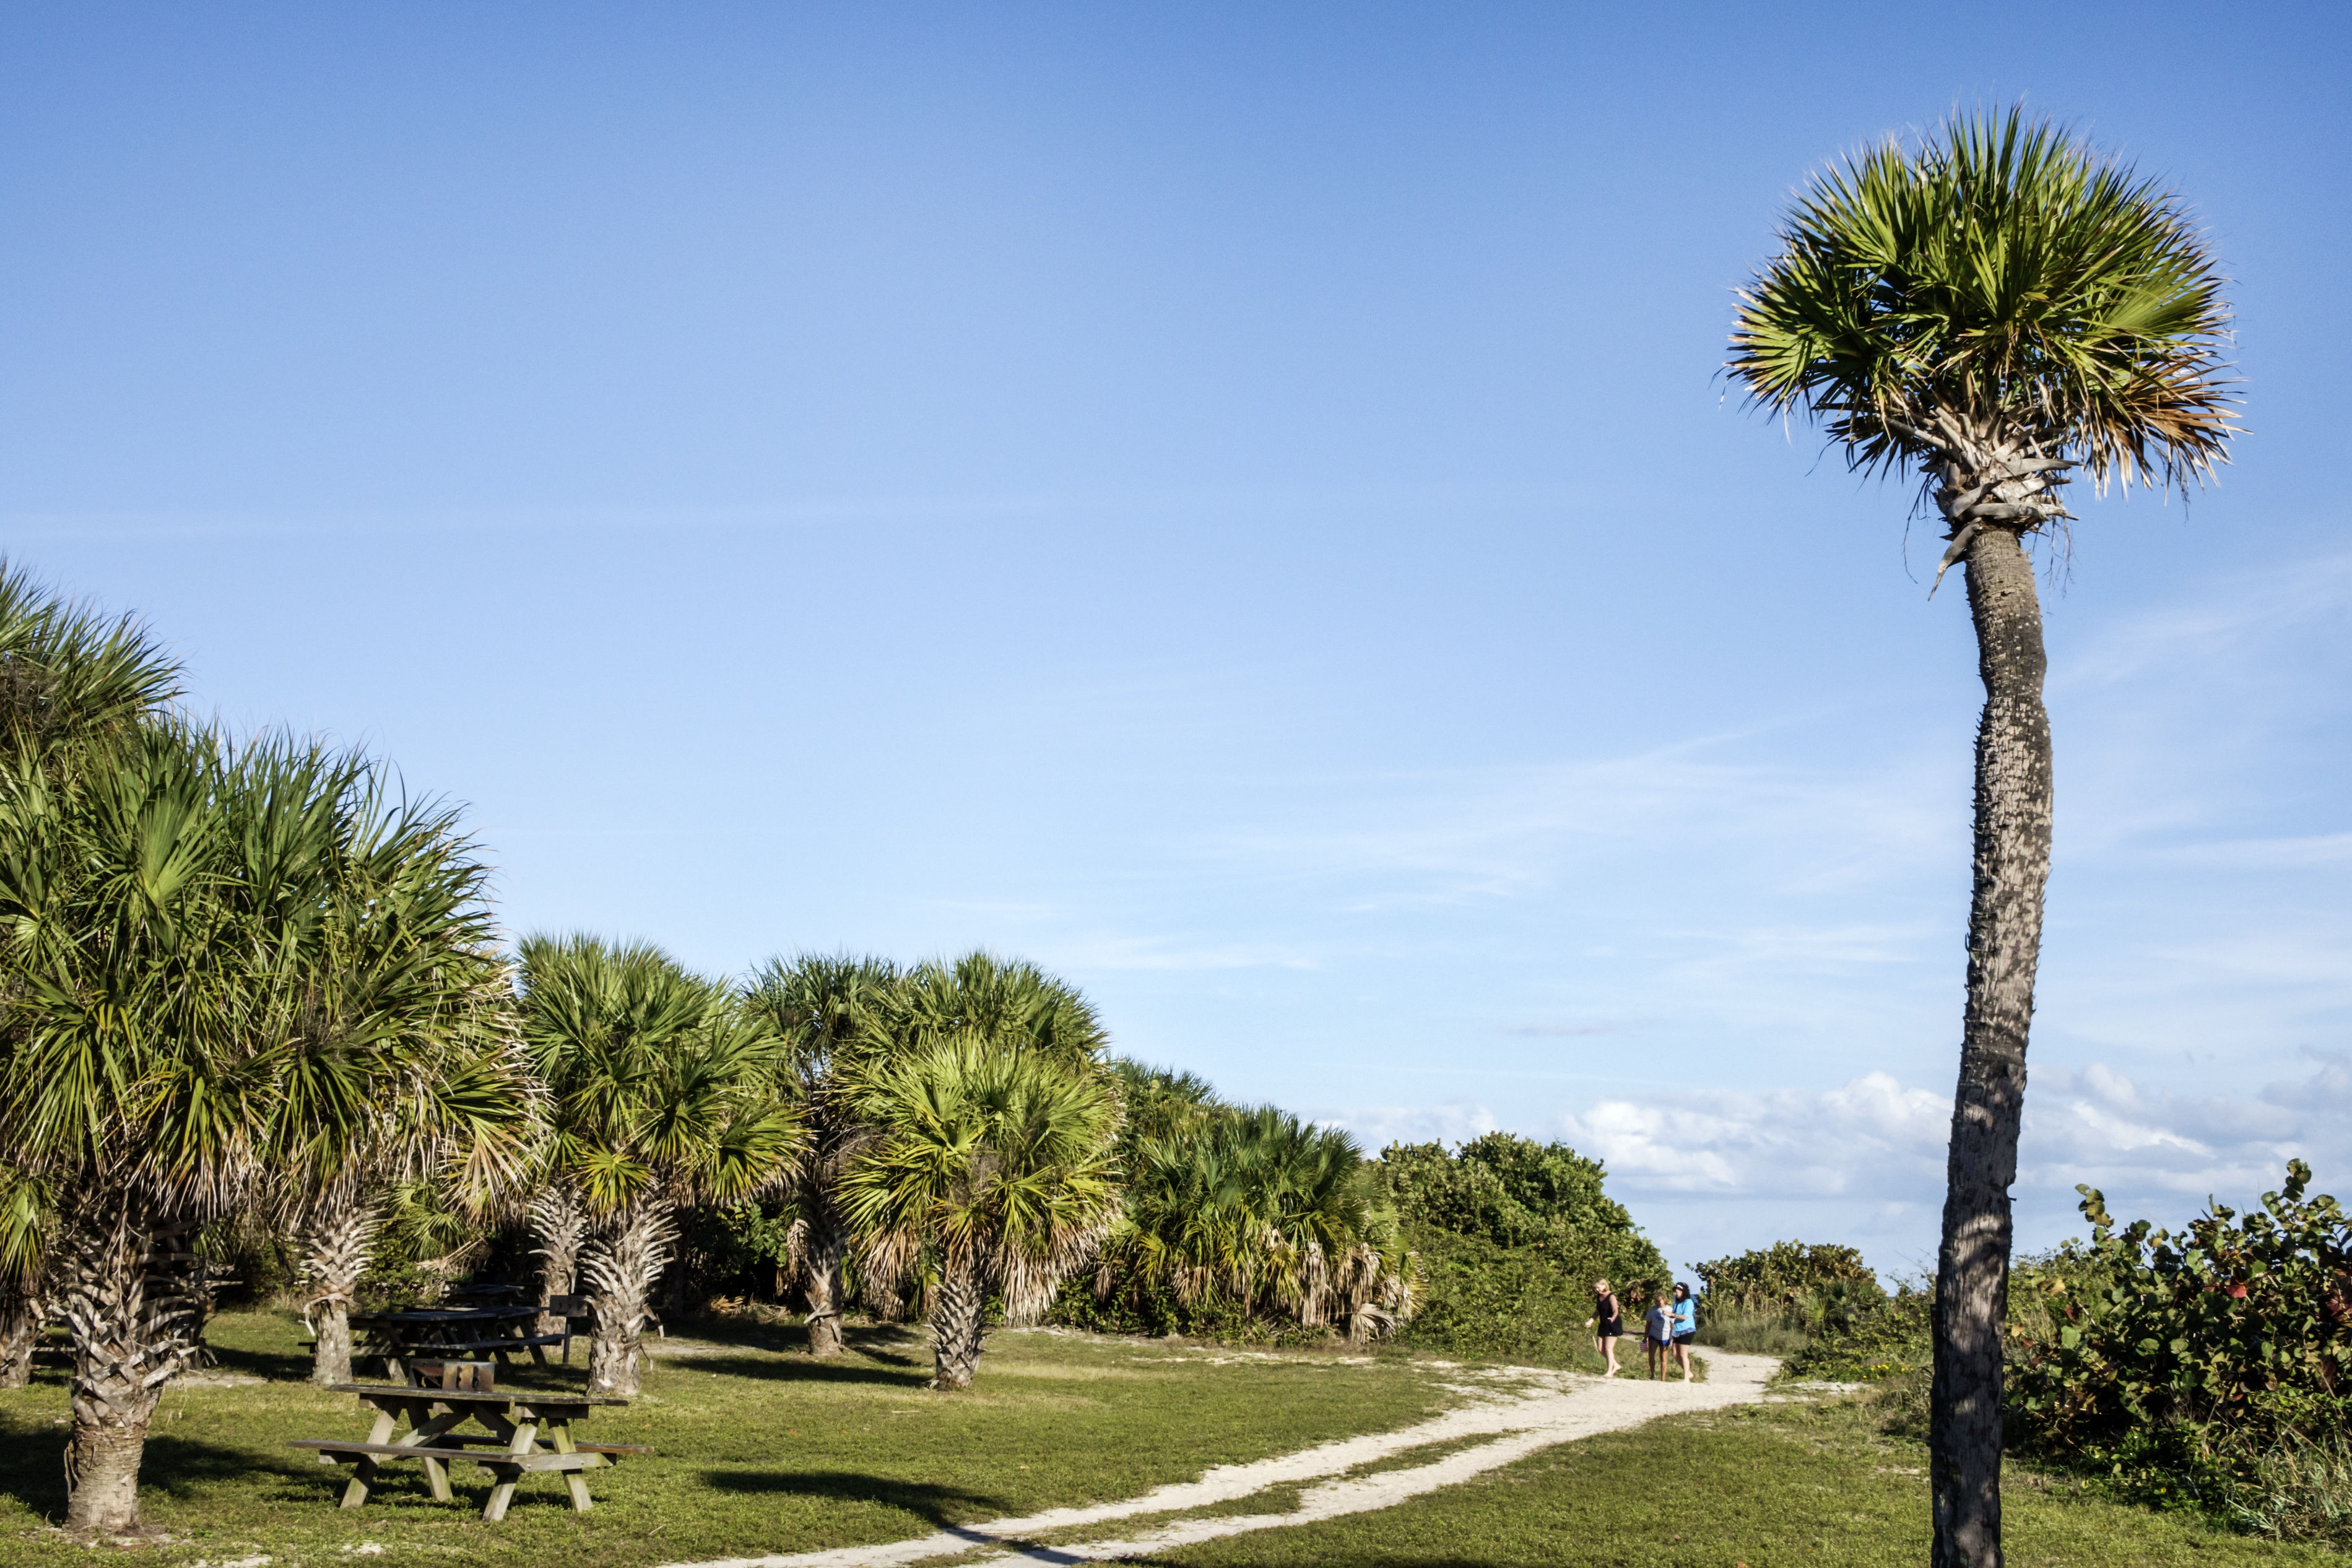 Florida's Beautiful Palm Trees Are Under Attack by a Fatal, Insect-Borne Disease